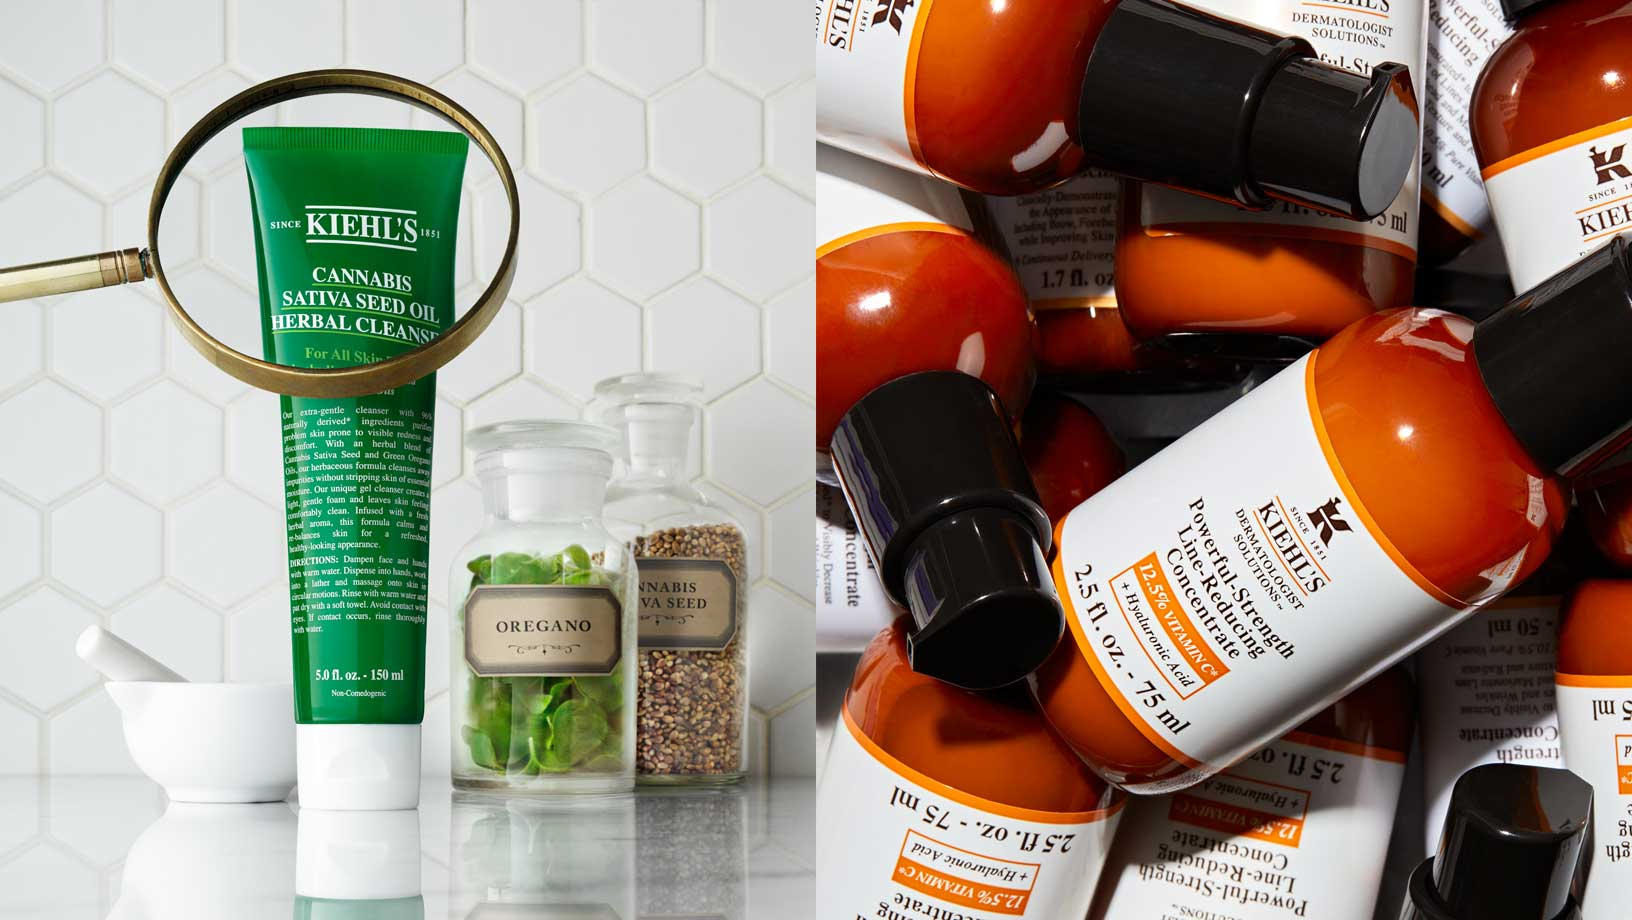 Two Kiehl's images combines - on the left, Cannabis Sativa Seed Oil Herbal Cleanser on a marbel counter top with a magnifying glass over part of the packaging. Herbs in glass jars and a pestel and mortar in the background. On the right, Powerful-Strenght Line-Reducing Concentrate piled on top of eachother.